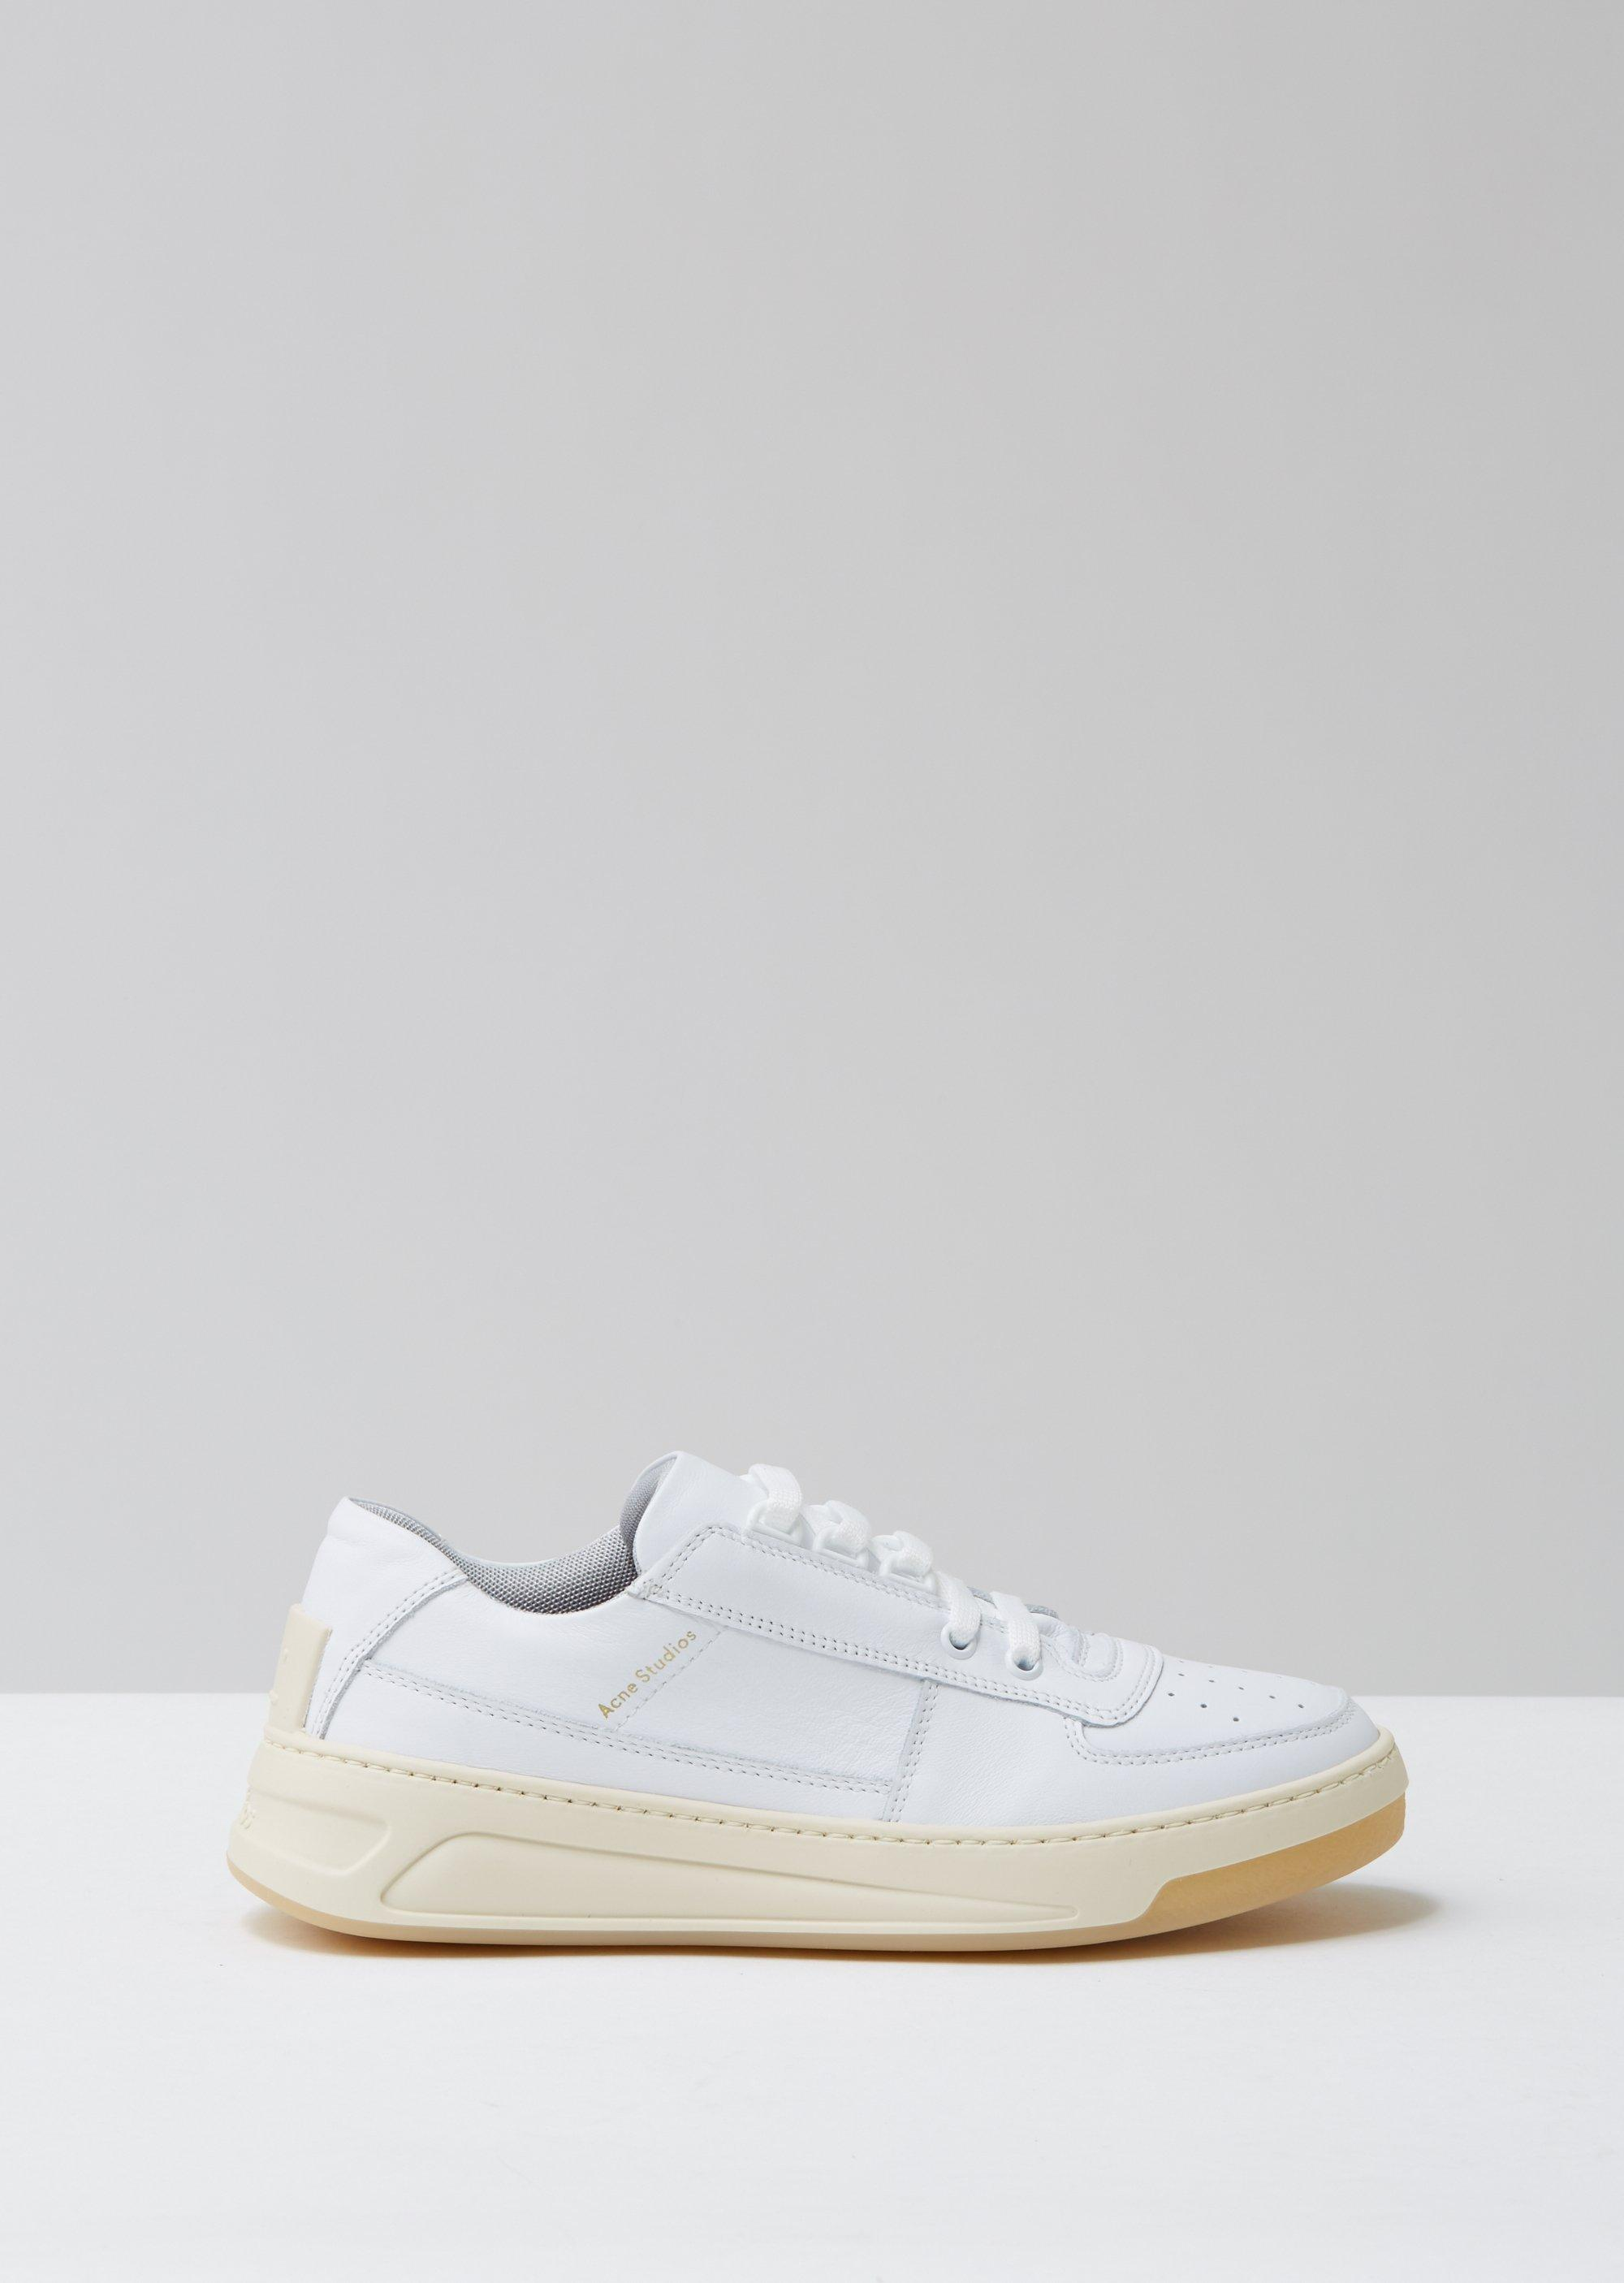 Acne Studios Leather Steffey Lace Up